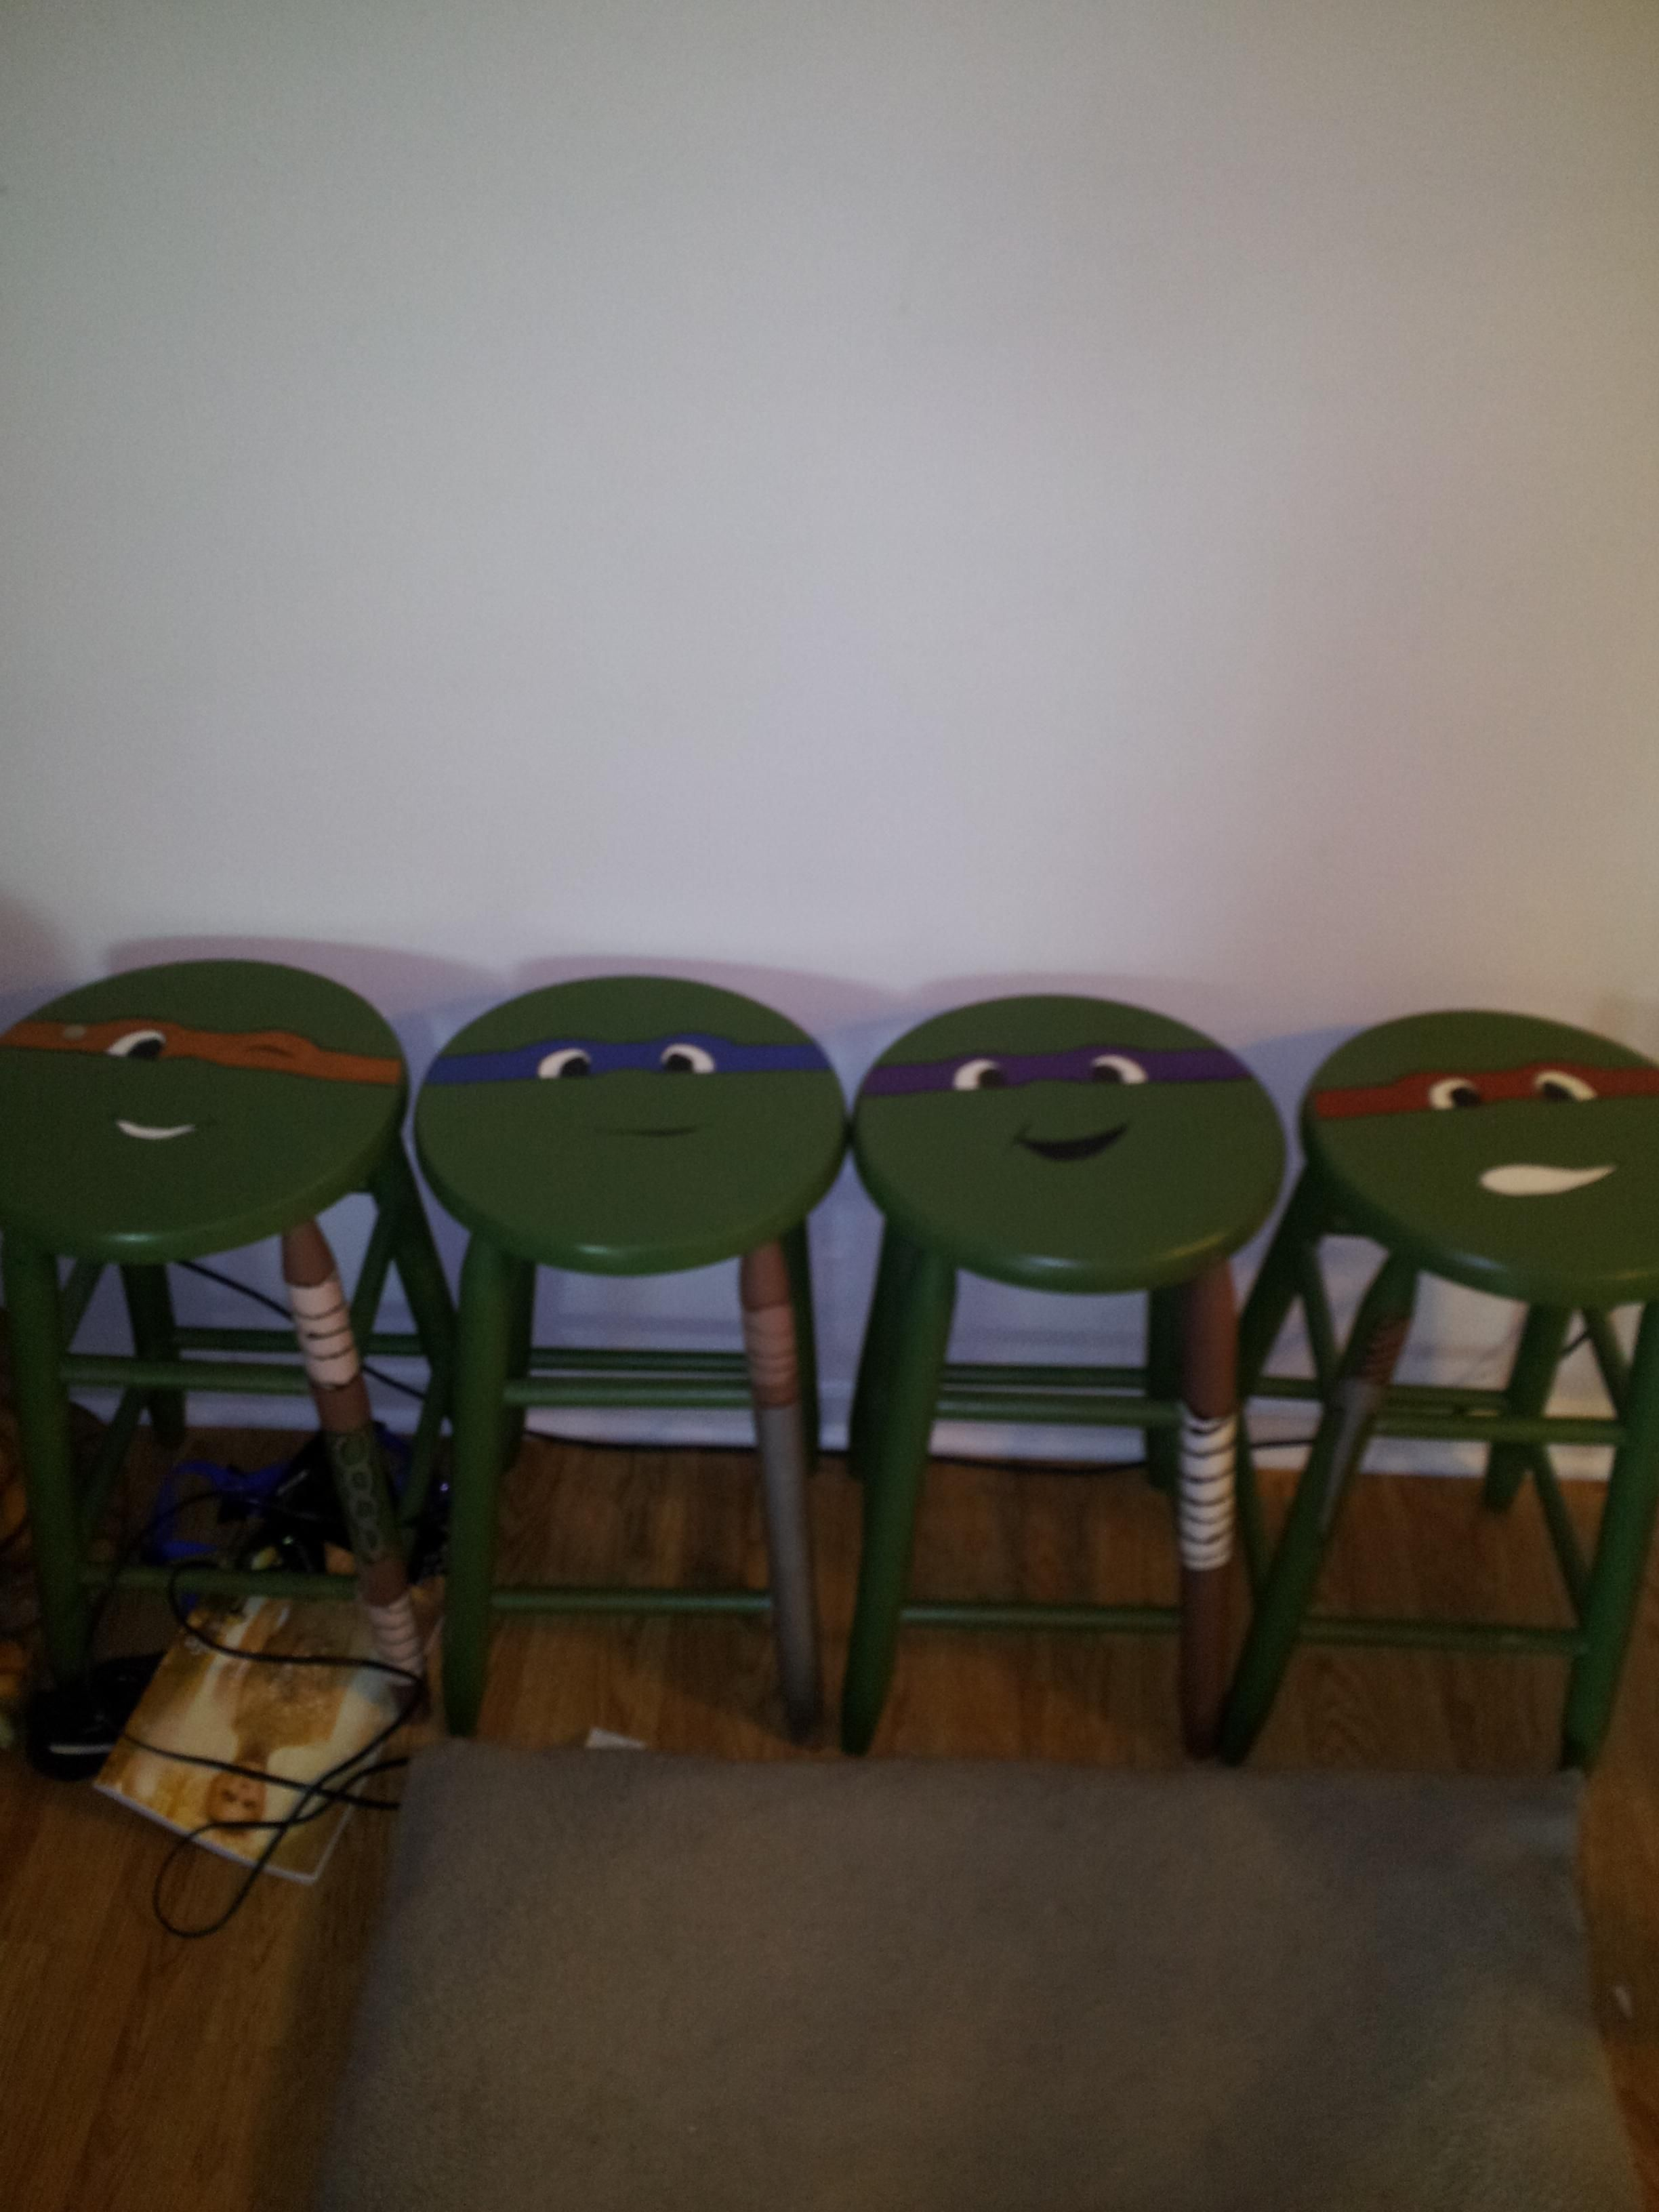 Saw these ninja turtle stools at a new friendus houses their